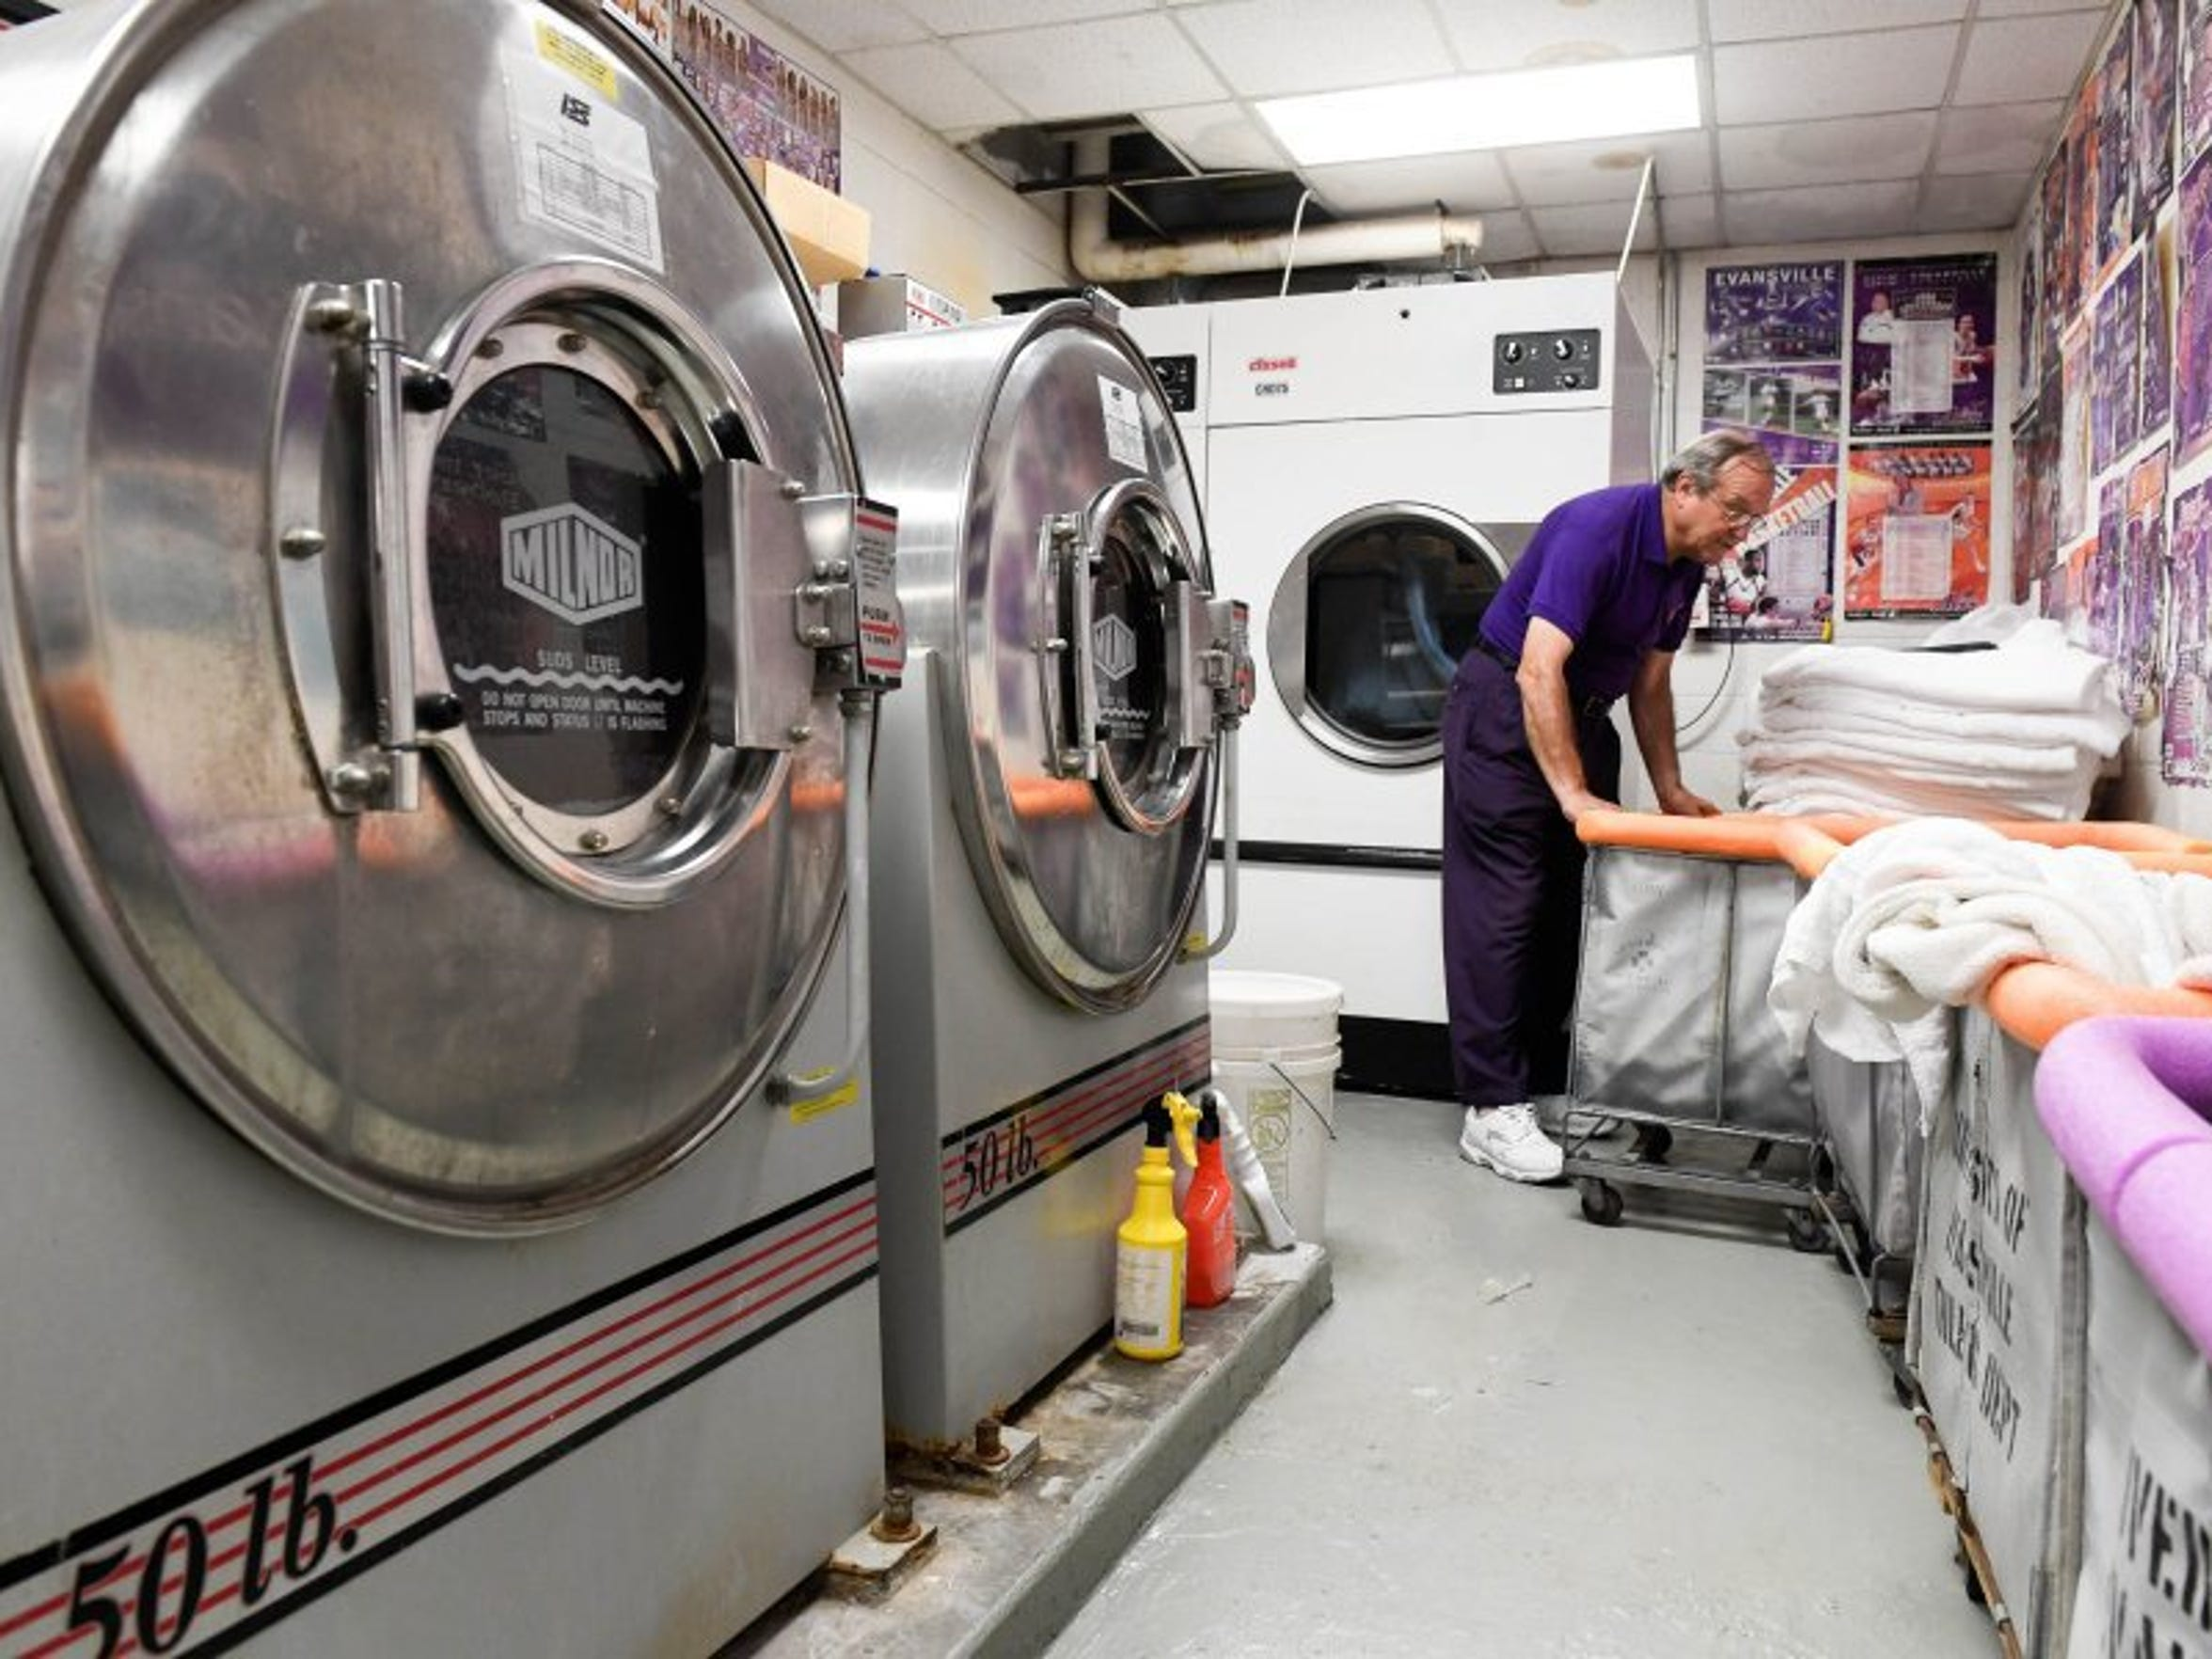 University of Evansville equipment manager Daryl Buente didn't get much of a break in the summertime. He worked alone, washing several-pound loads each day to keep locker rooms stocked with towels and practice clothes.